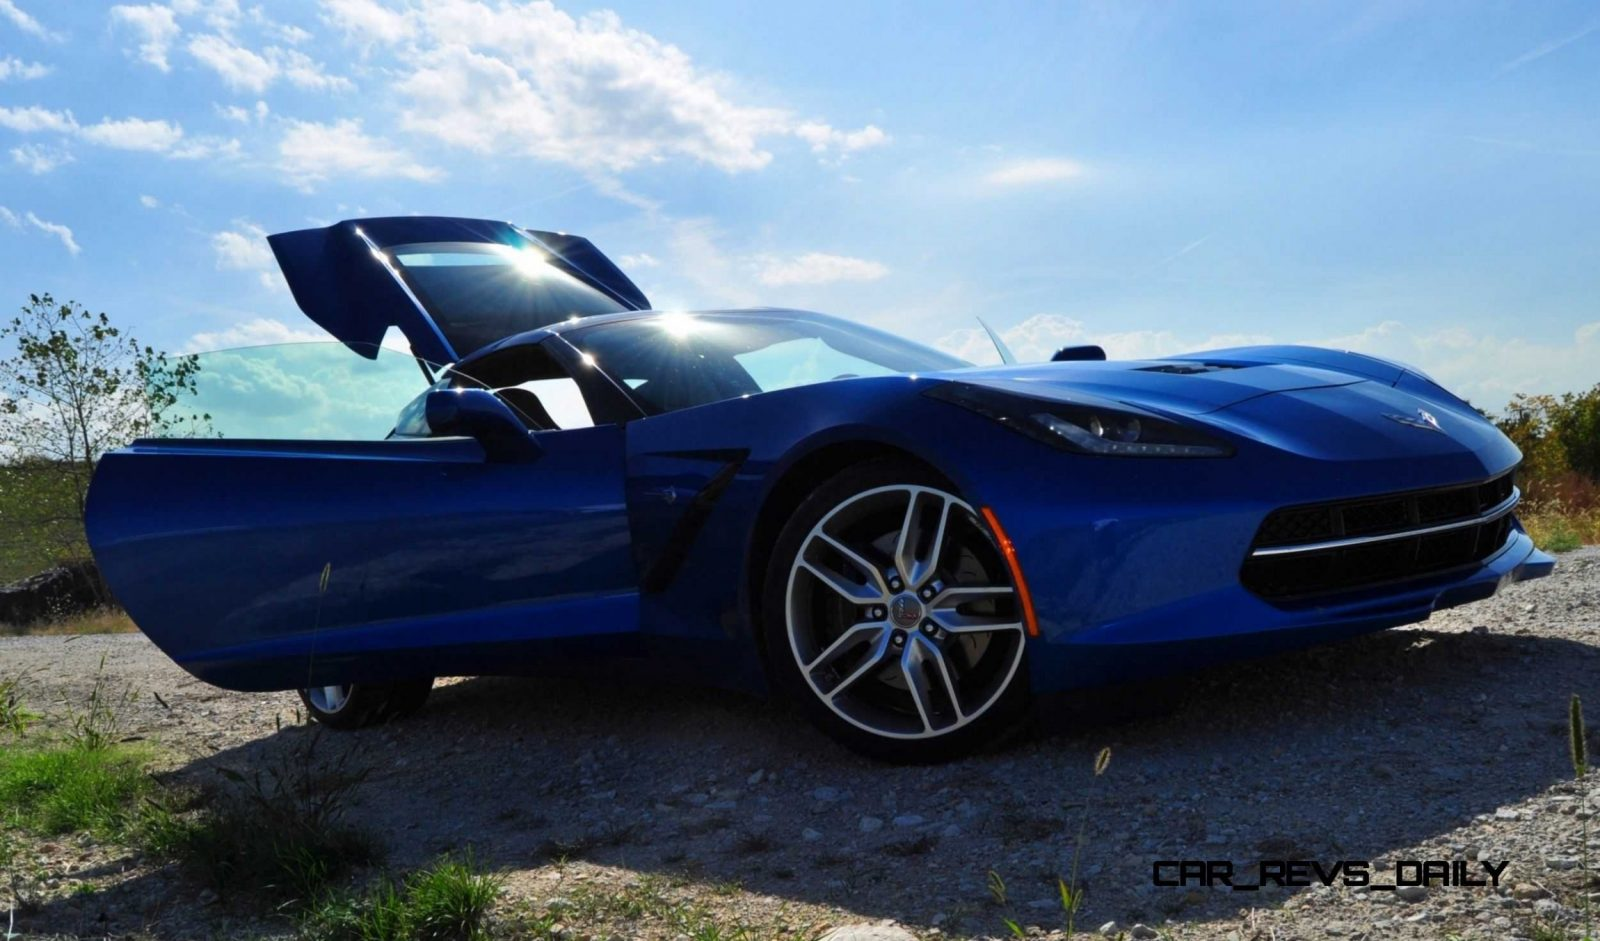 2014 Chevrolet Corvette Stingray Z51 in 102 Photos38